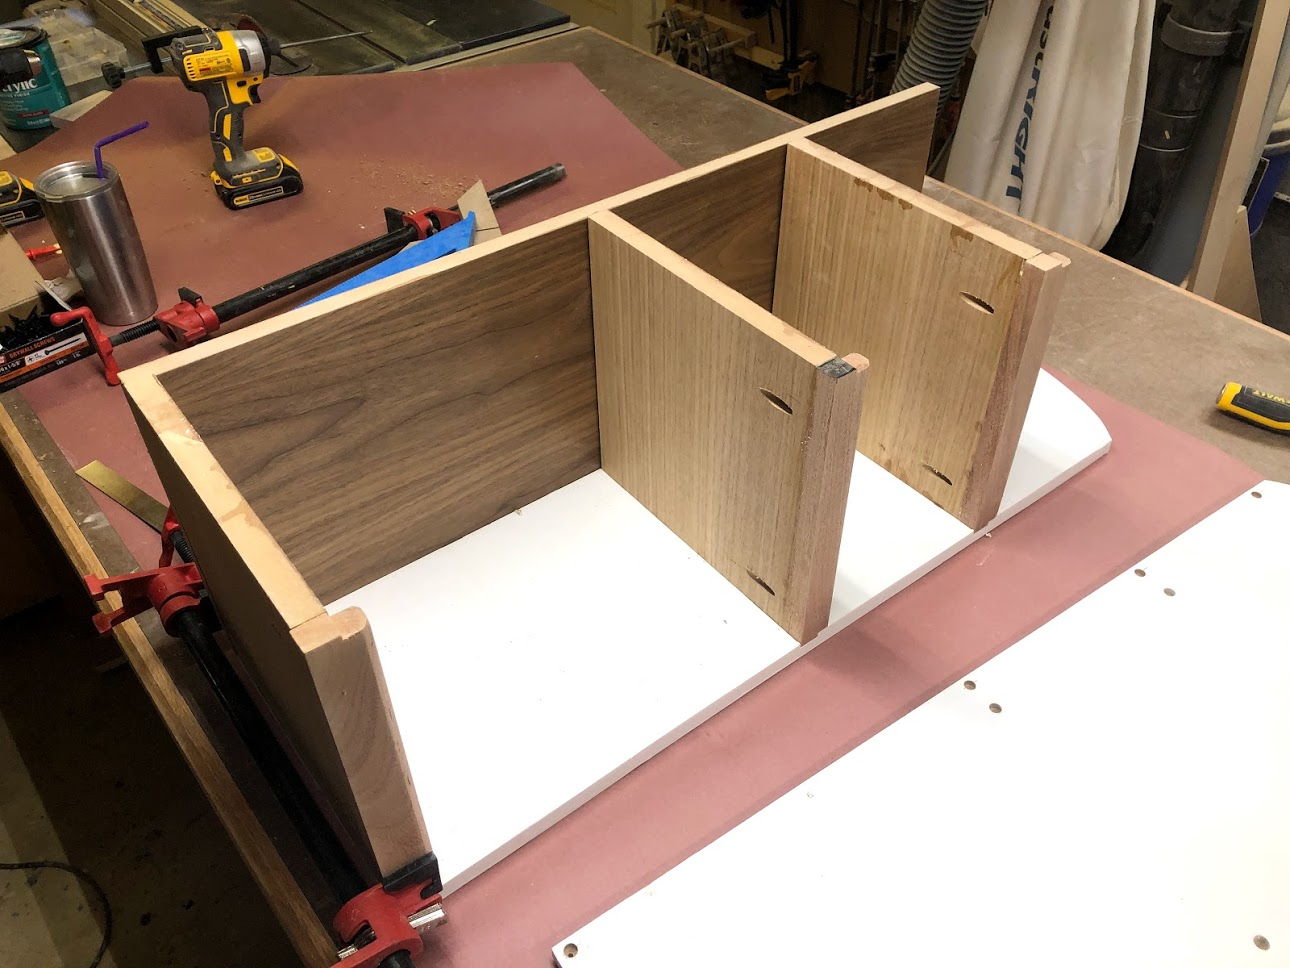 Here are all 3 shelves with the pocket holes and the oak shelf fronts attached.